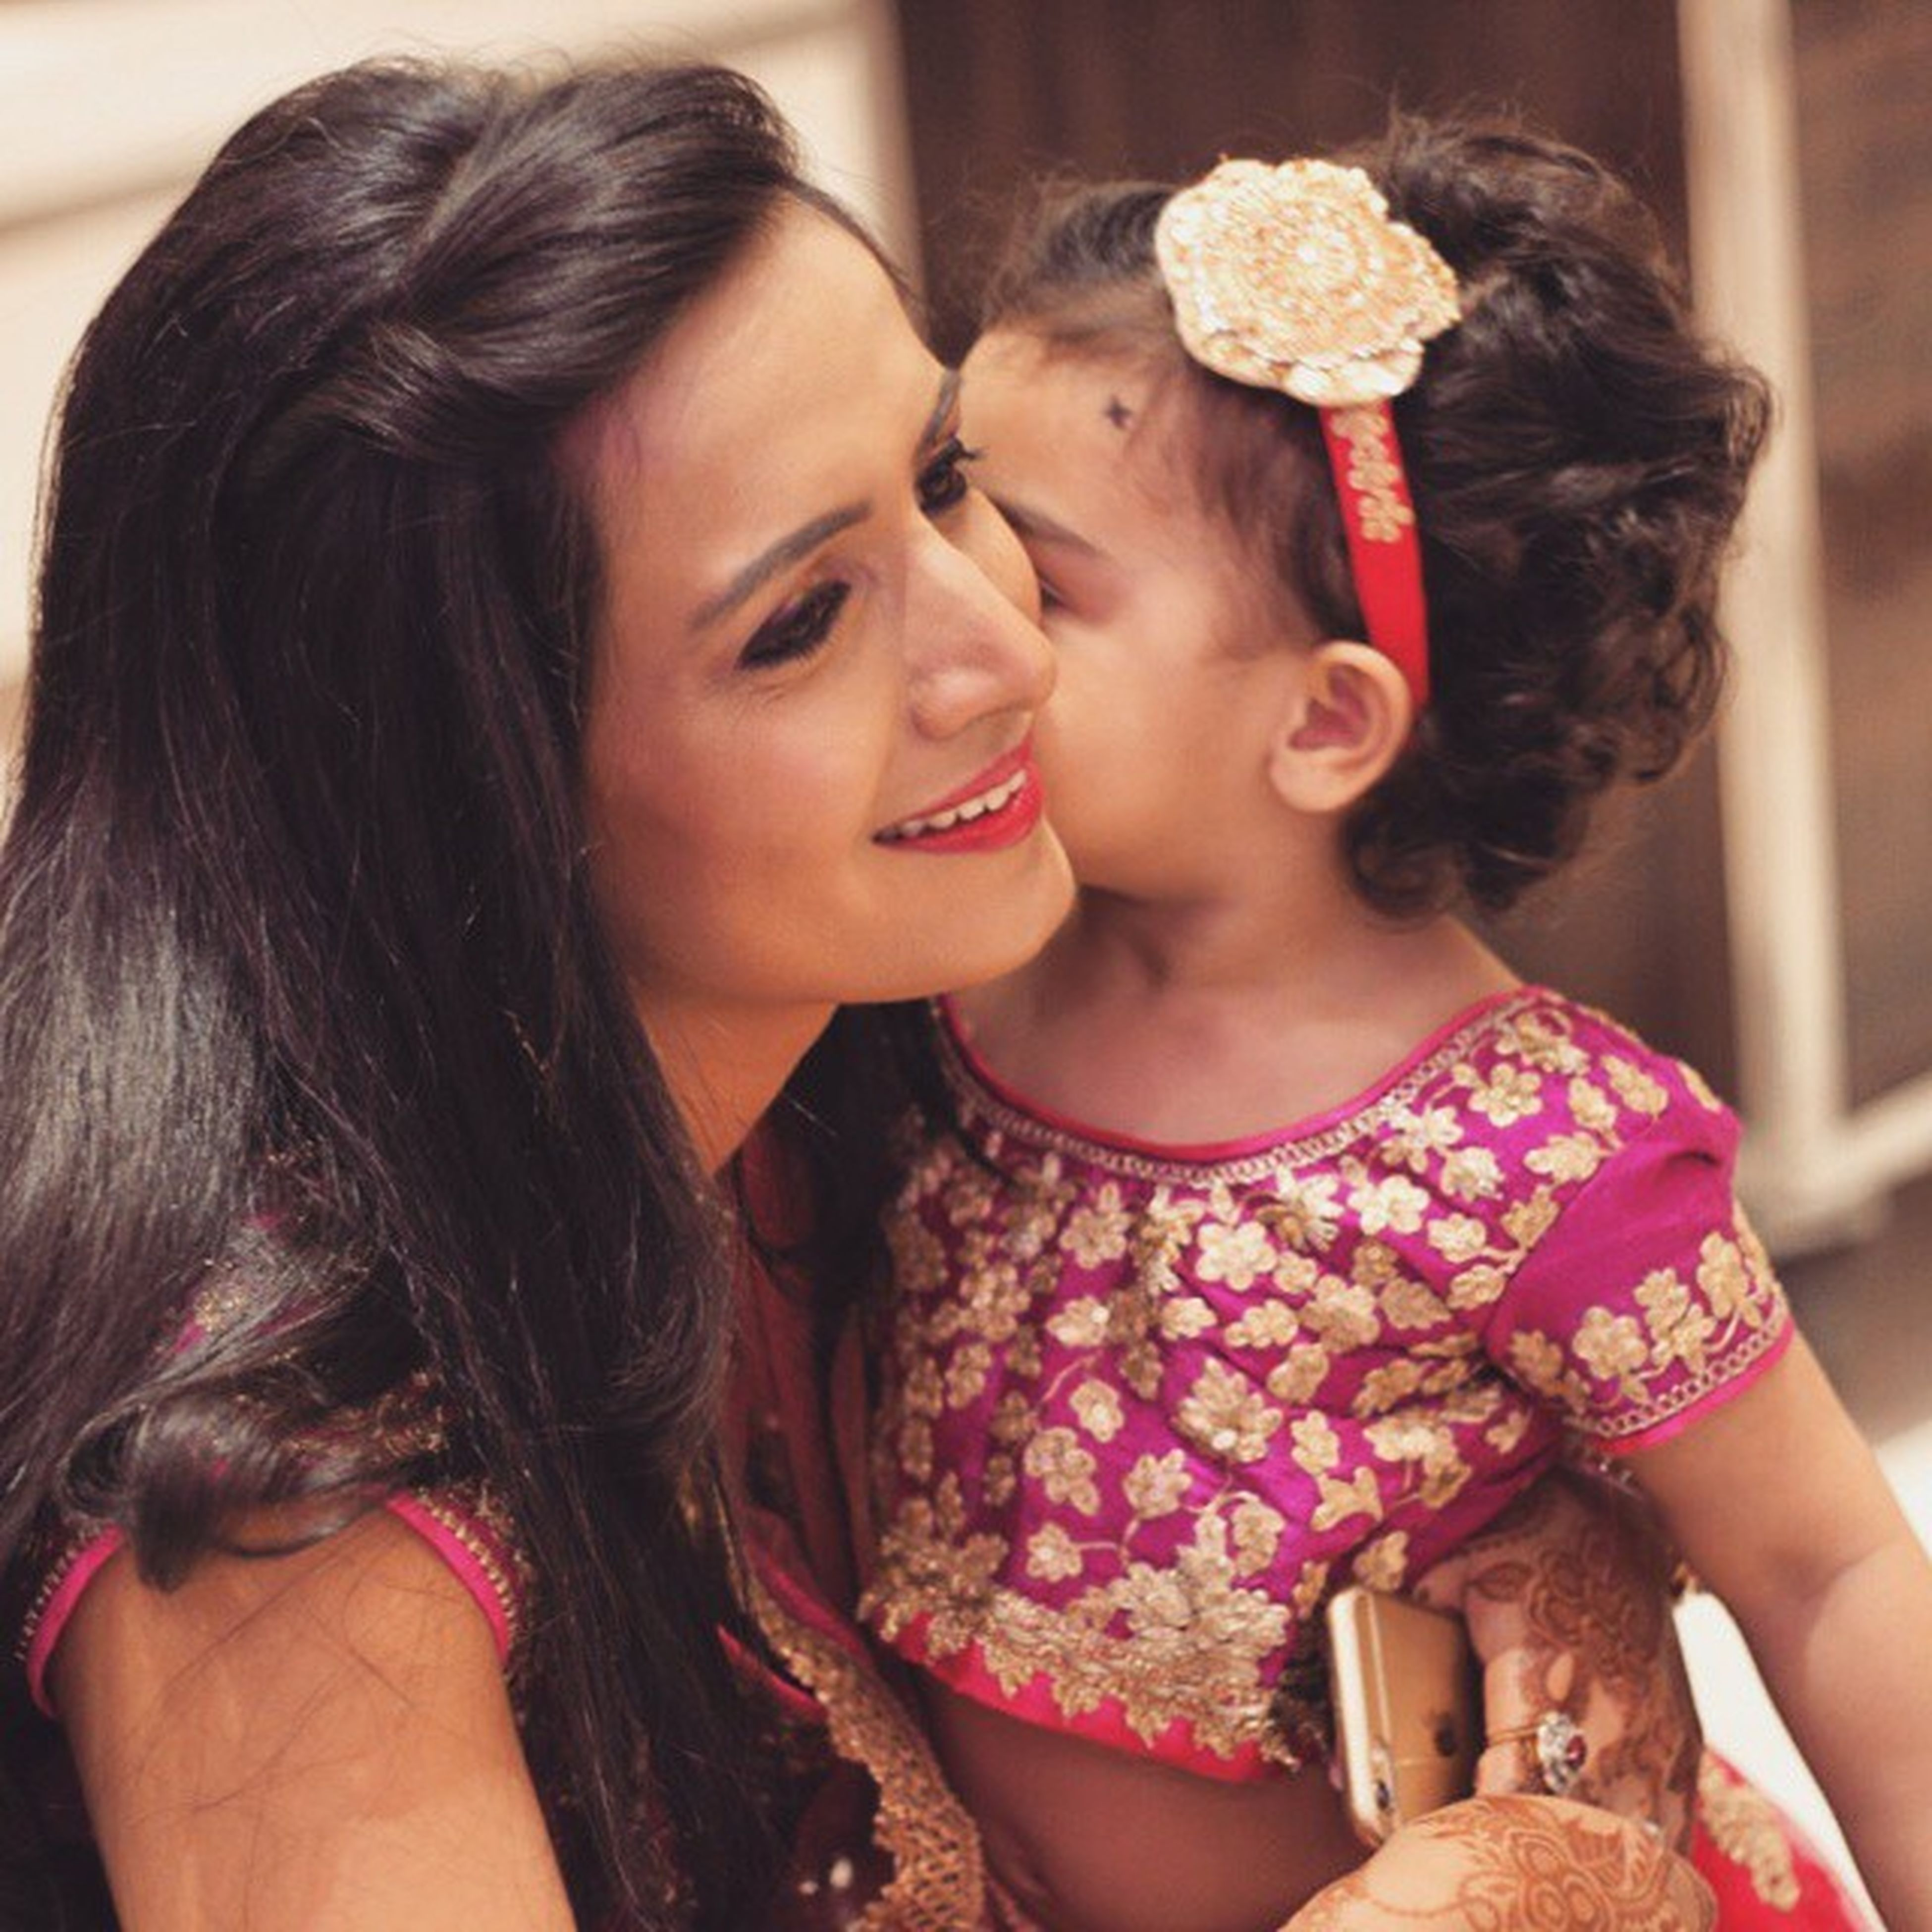 Beautyful  Cute Prety Bitya Love Kiss Feel Mother Happymother Care Beautqueen Happyclicks Photography Enjoying Gulfam Fotofinch Delhi Dreamgrand